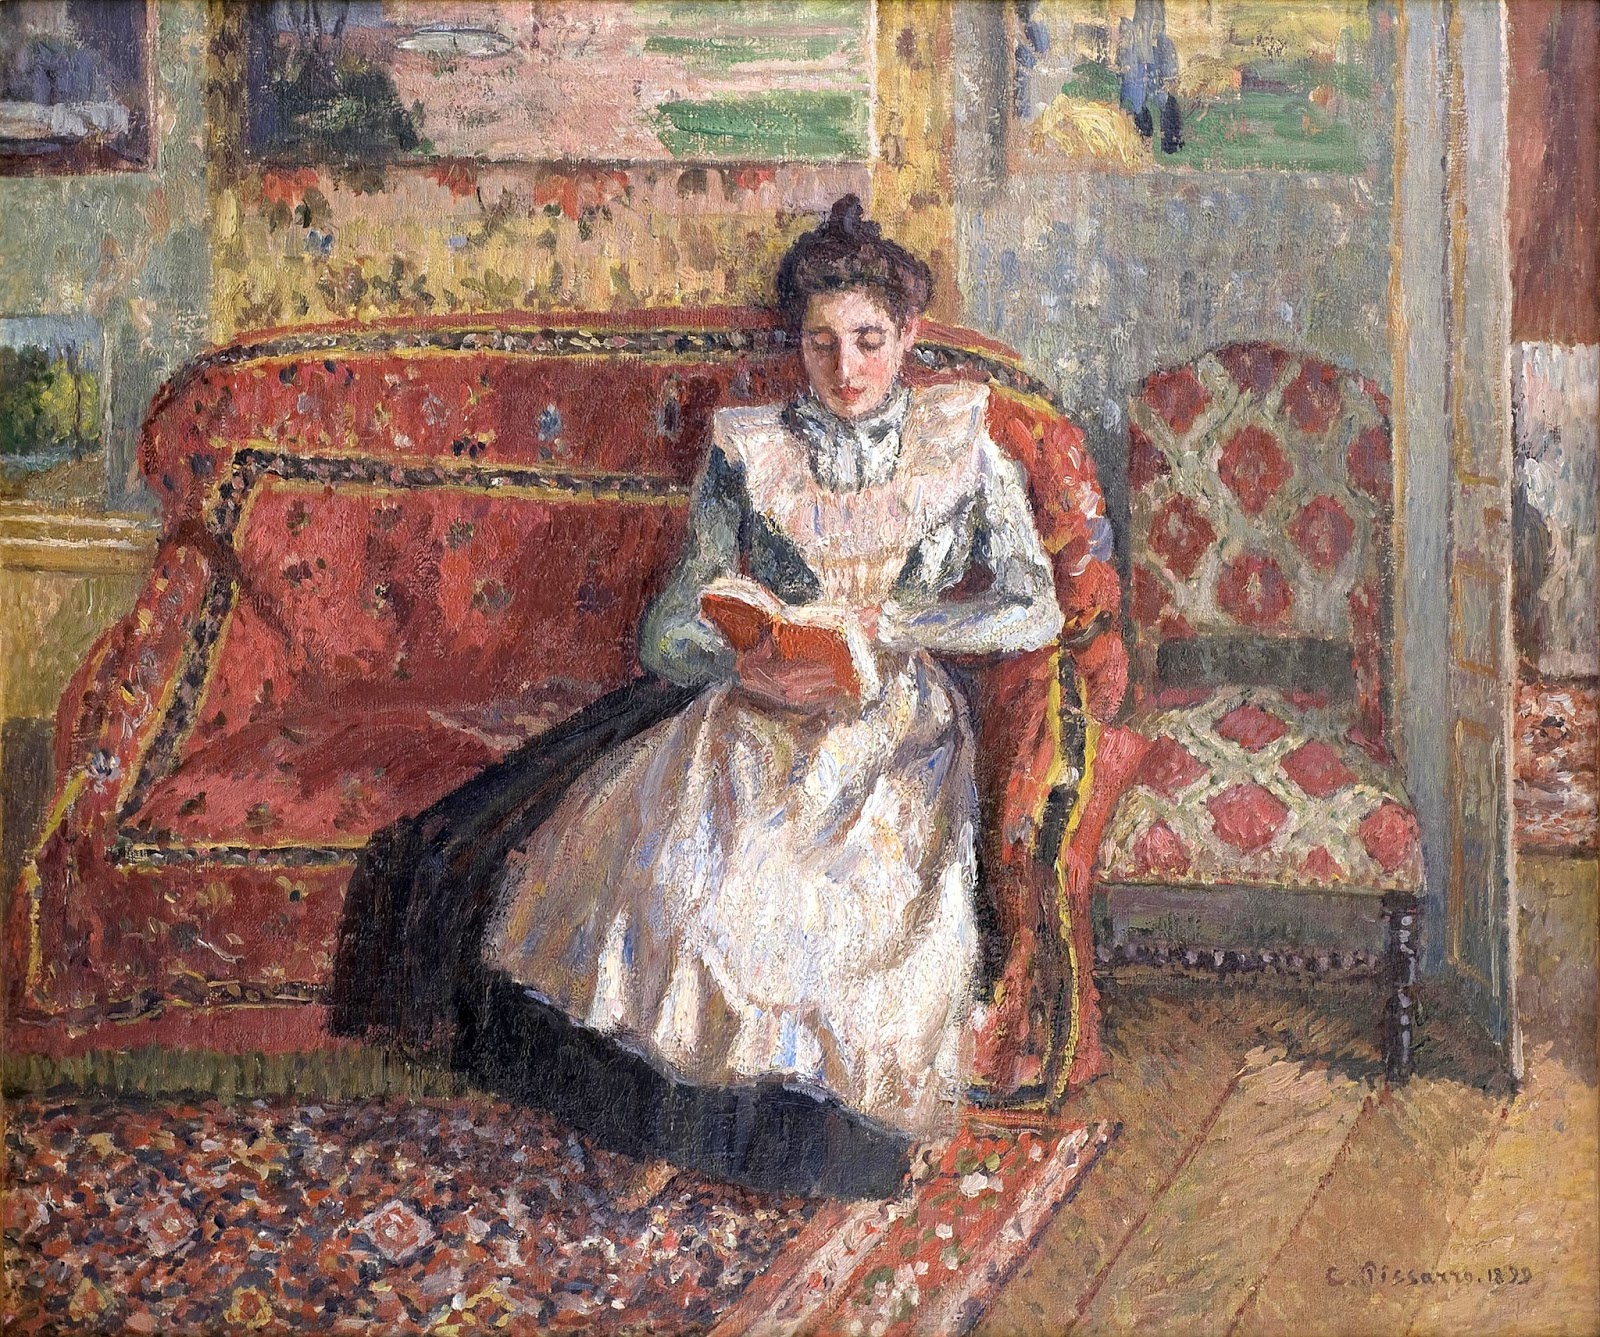 Reading and art camille pissarro for Camille pissarro oeuvre